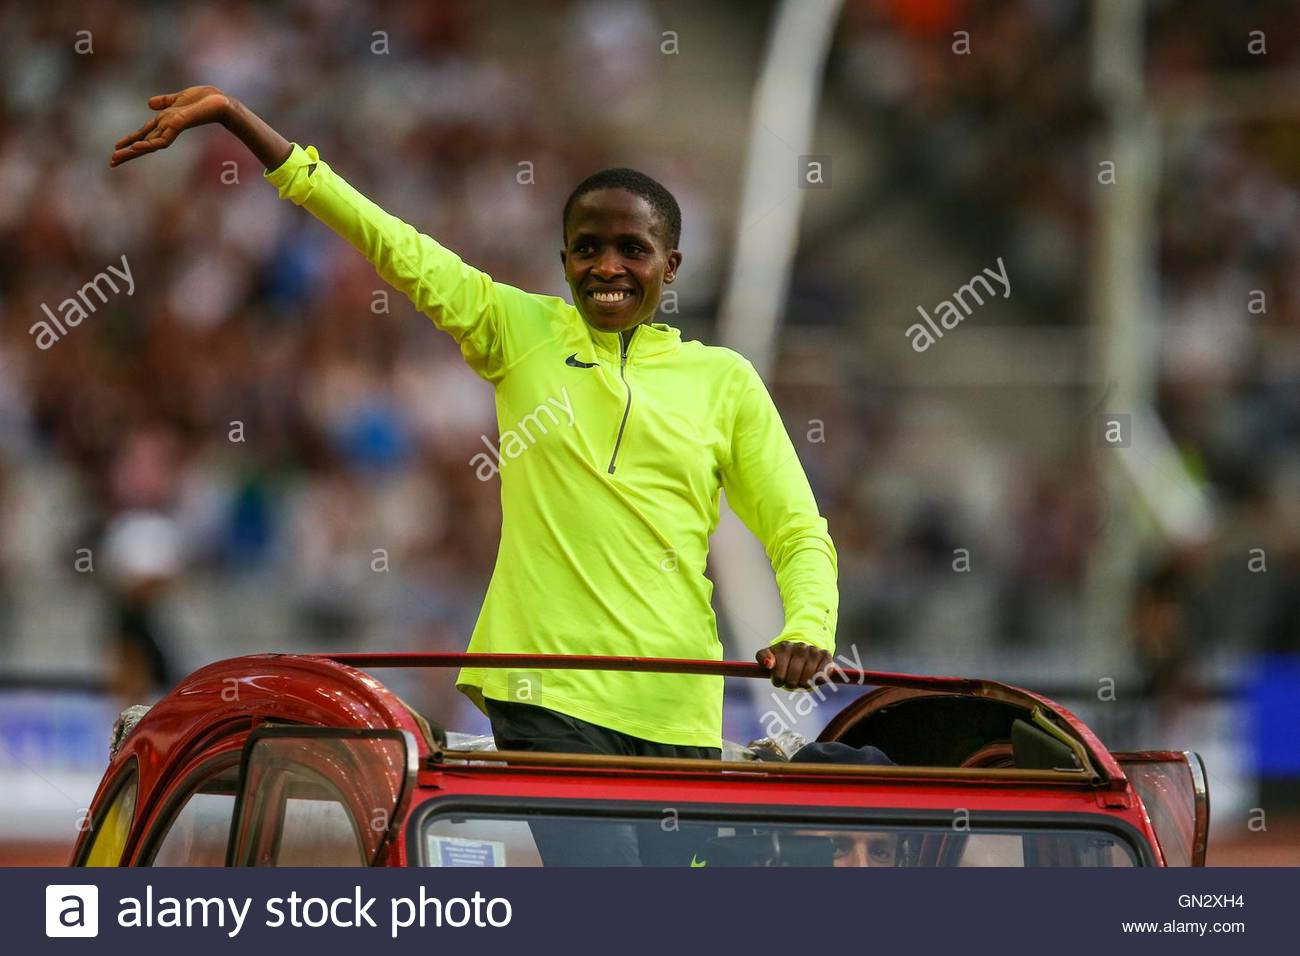 Saint Denis, France. 27th Aug, 2016. Kenyan middle-distance runner Faith Chepngetich Kipyegon parades in the Stade - Stock Image